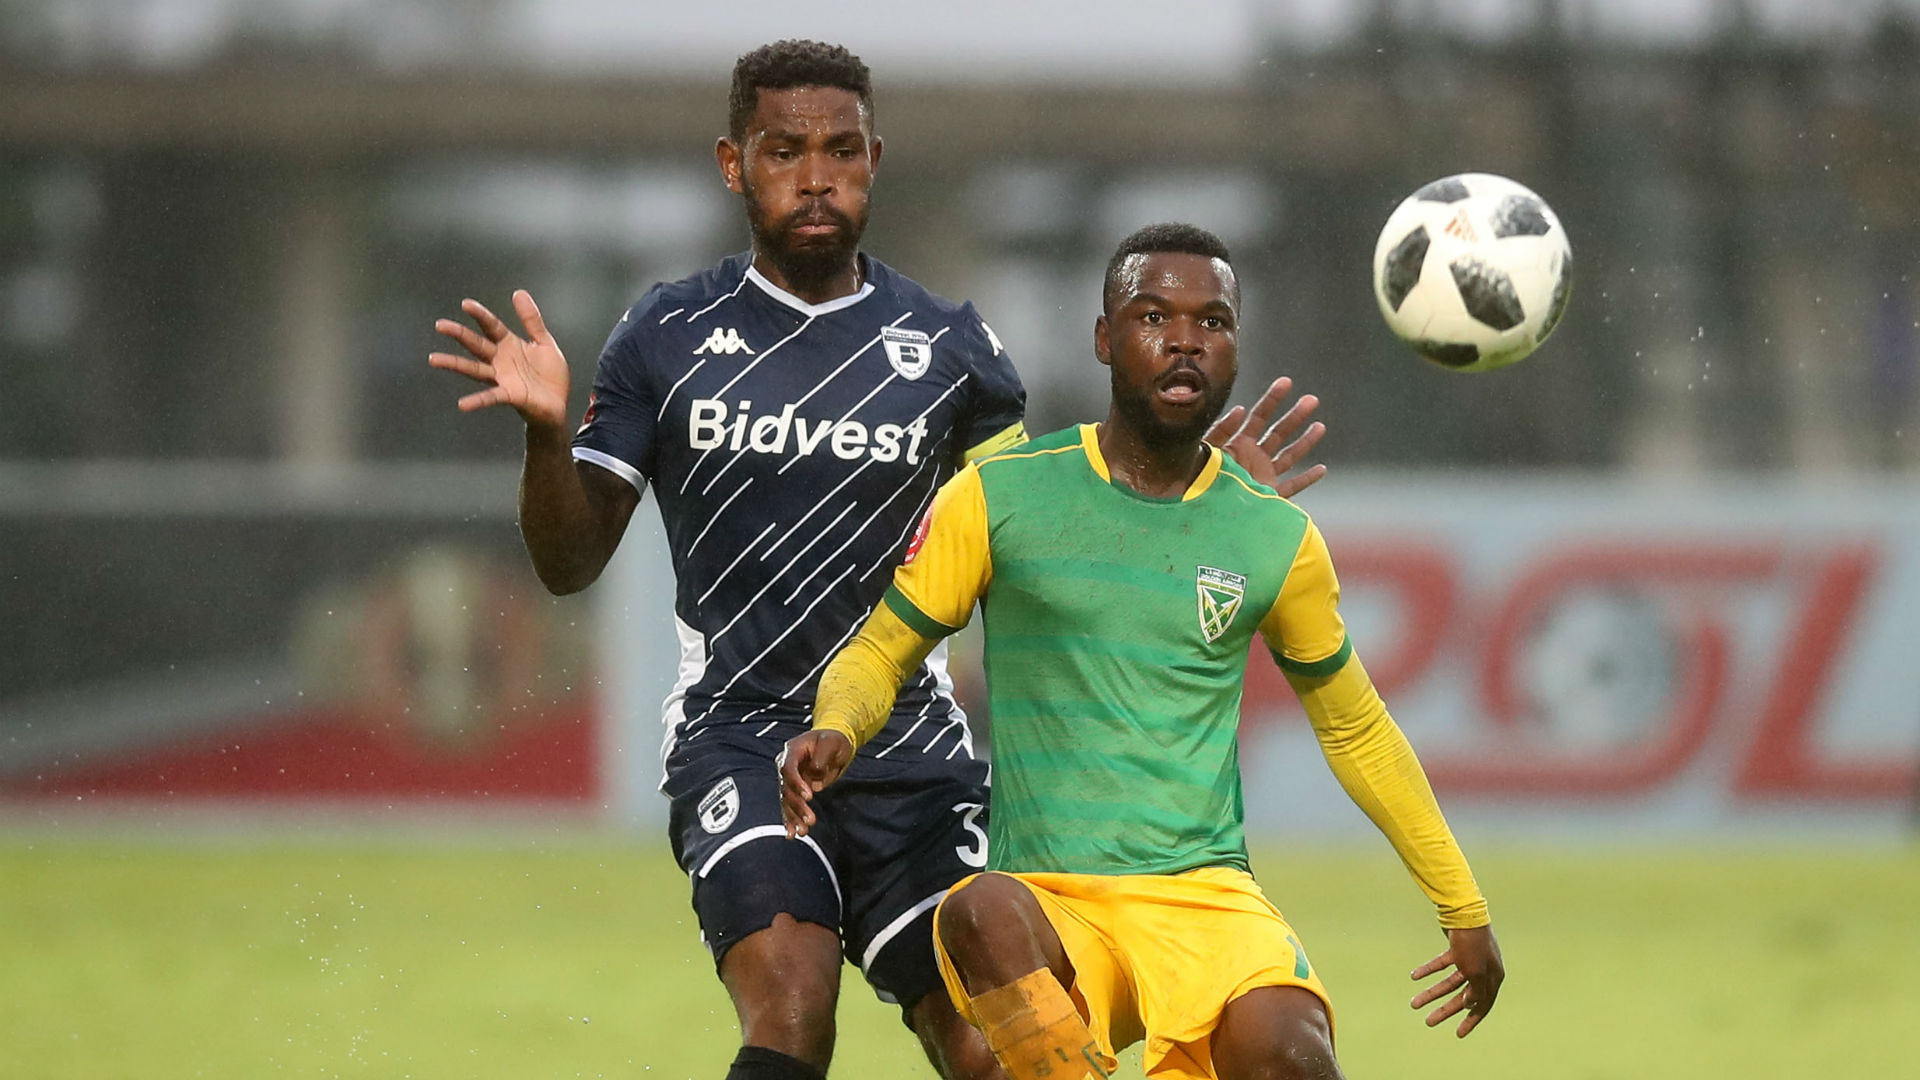 Bidvest Wits edge Golden Arrows 1-0 to rise to fifth on log - Sports Leo